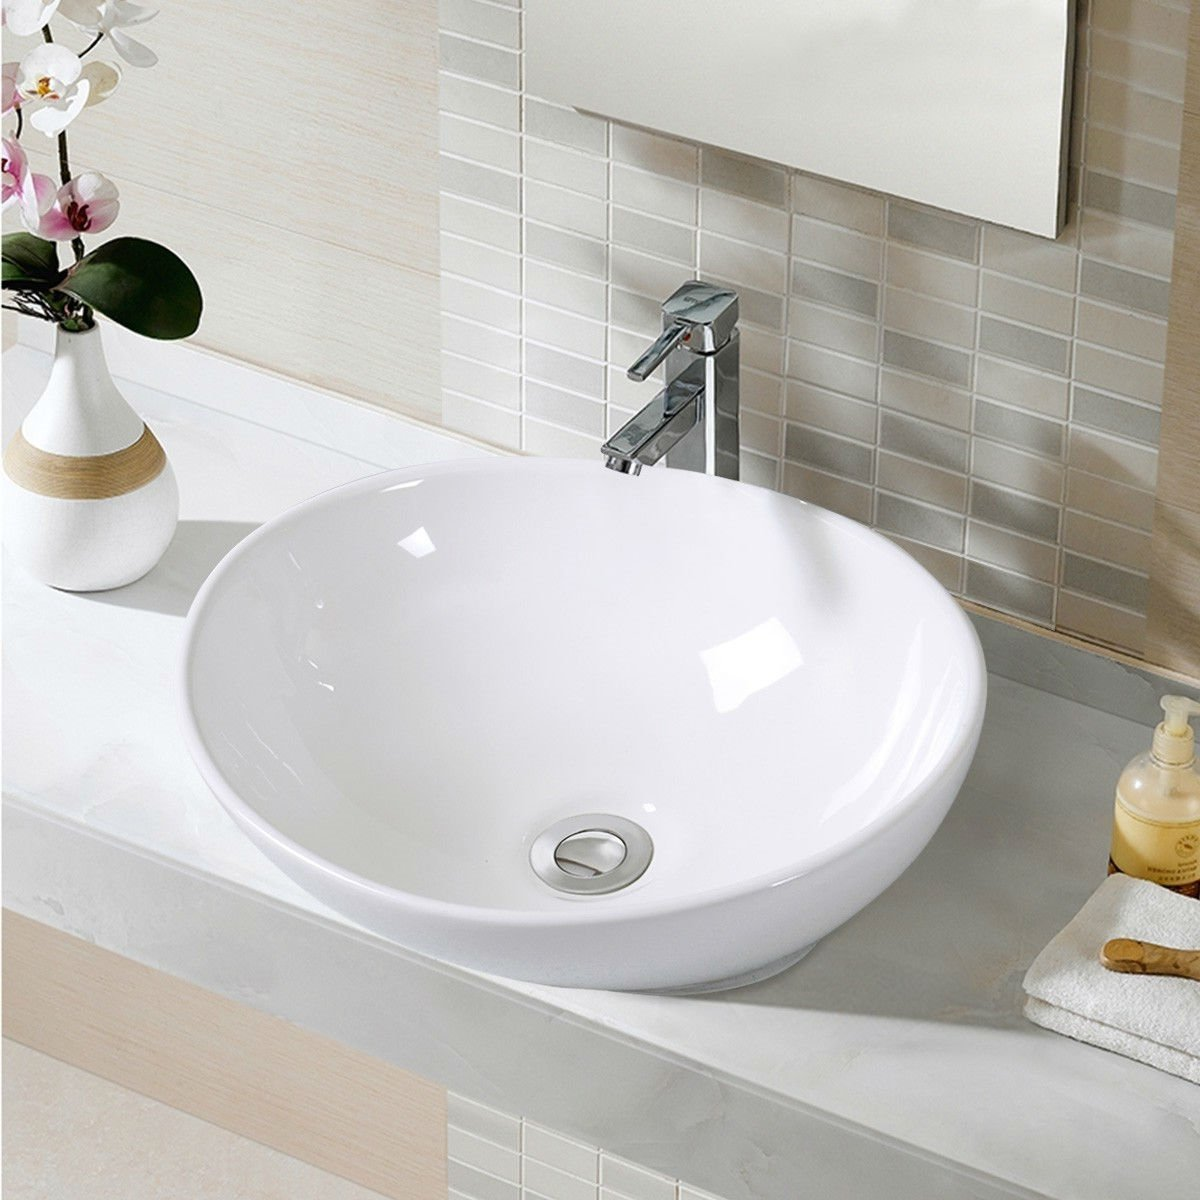 Contemporary Oval Basin Round Vessel Bathroom Sink in White.